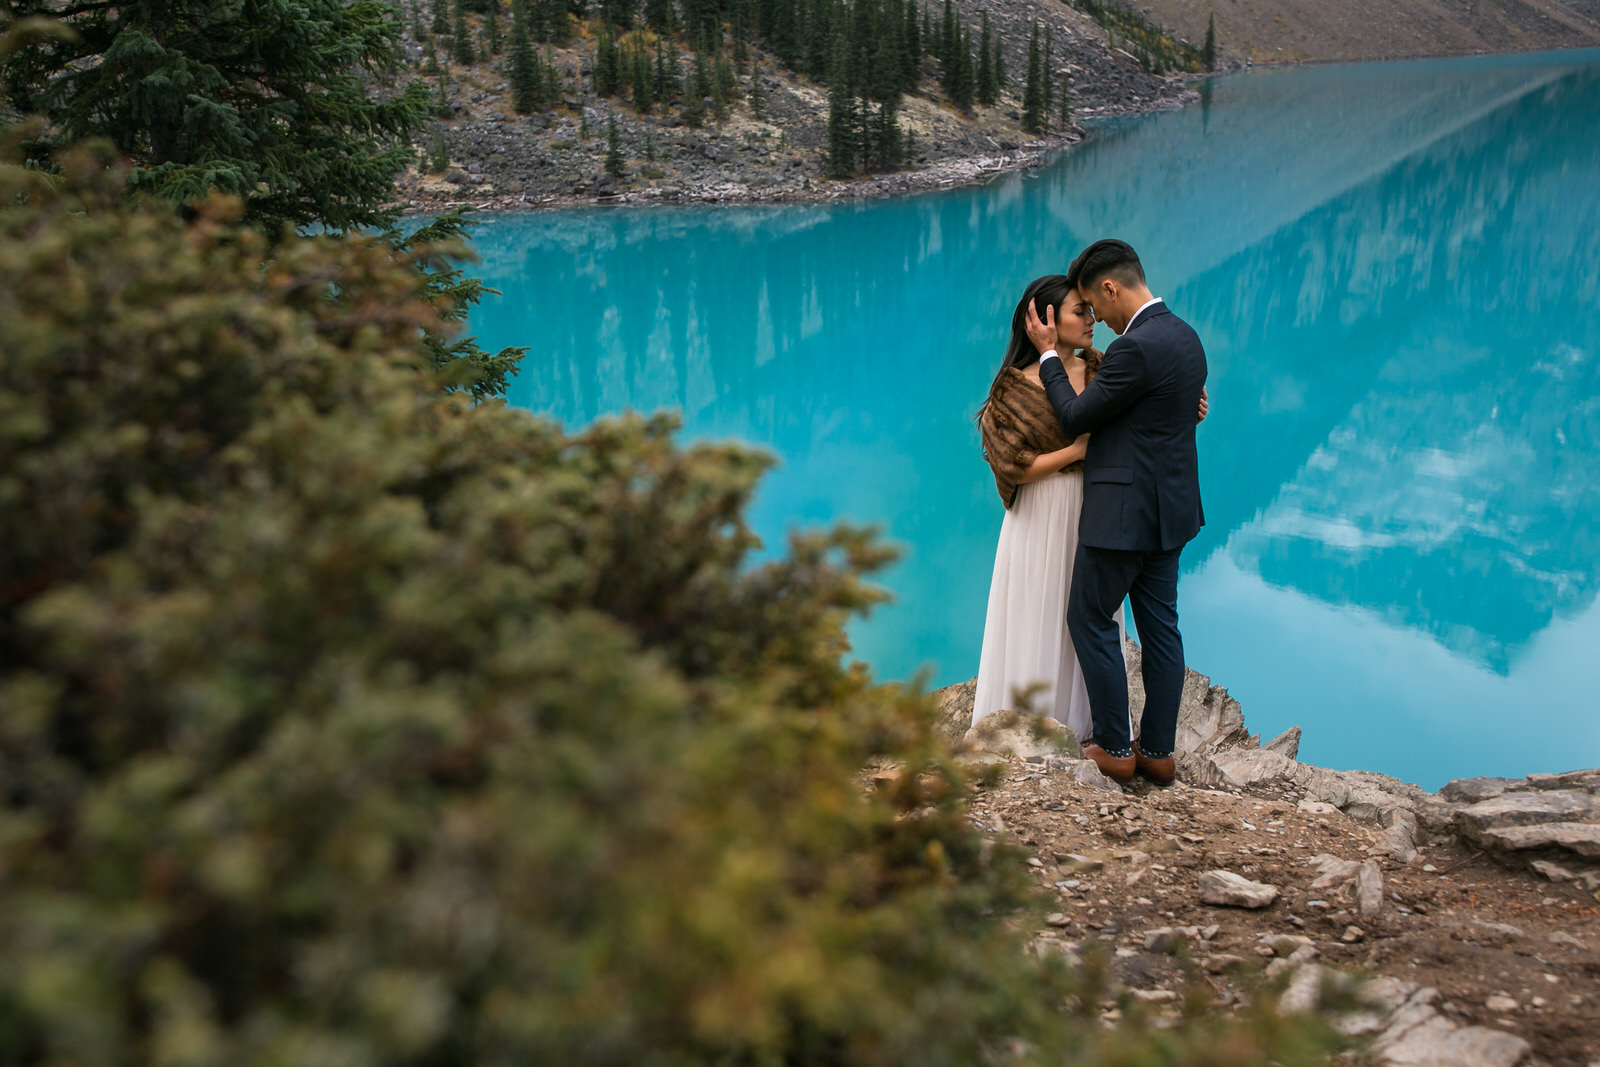 A well dressed Vietnamese couple embraces in front of a beautiful blue lake at Lake Moraine near Banff, Alberta. Photo by Clint Bargen Photography.